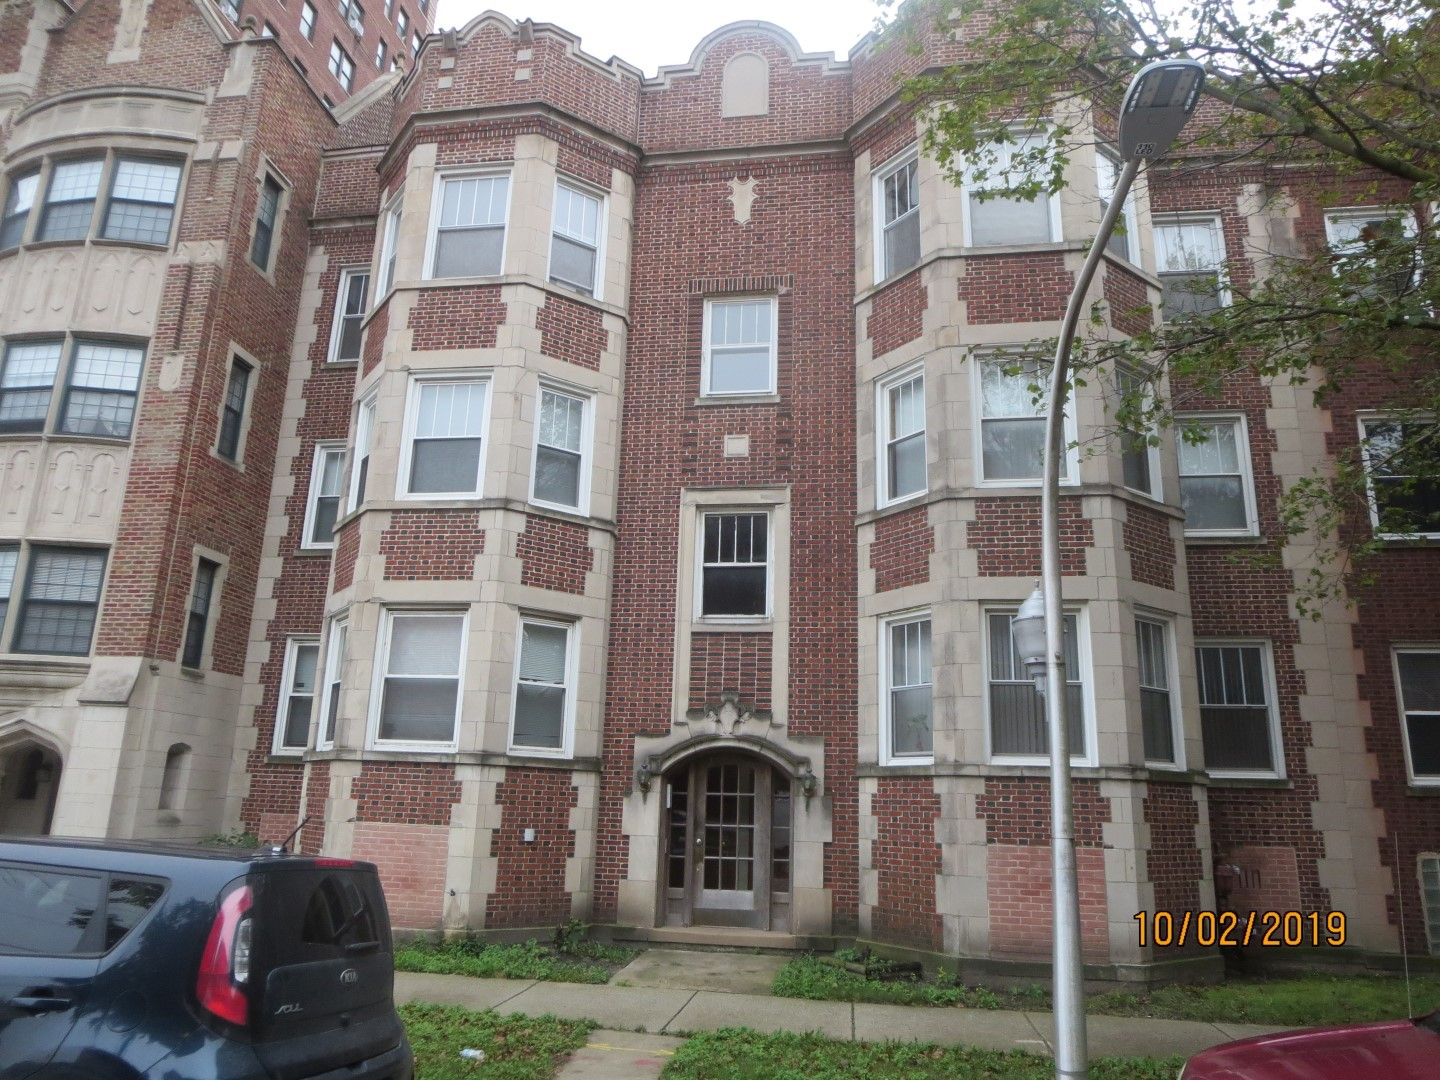 Very nice unit in a Brick 6 unit building for rent. Enjoy condo style living in a great neighborhood.  This unit has 2 bedrooms, 1 full bath, spacious living rm & dining rm, kitchen and built-in decorative fireplace w/bookshelves. Vintage building. all utilities are the responsibility of the tenant. First and last months rent upon move in, $300 move in fee which is non-refundable.  EMAIL ONLY PLEASE.  SUBMIT RENTAL APPLICATION TO AGENT.  CHAC vouchers will not be accepted.